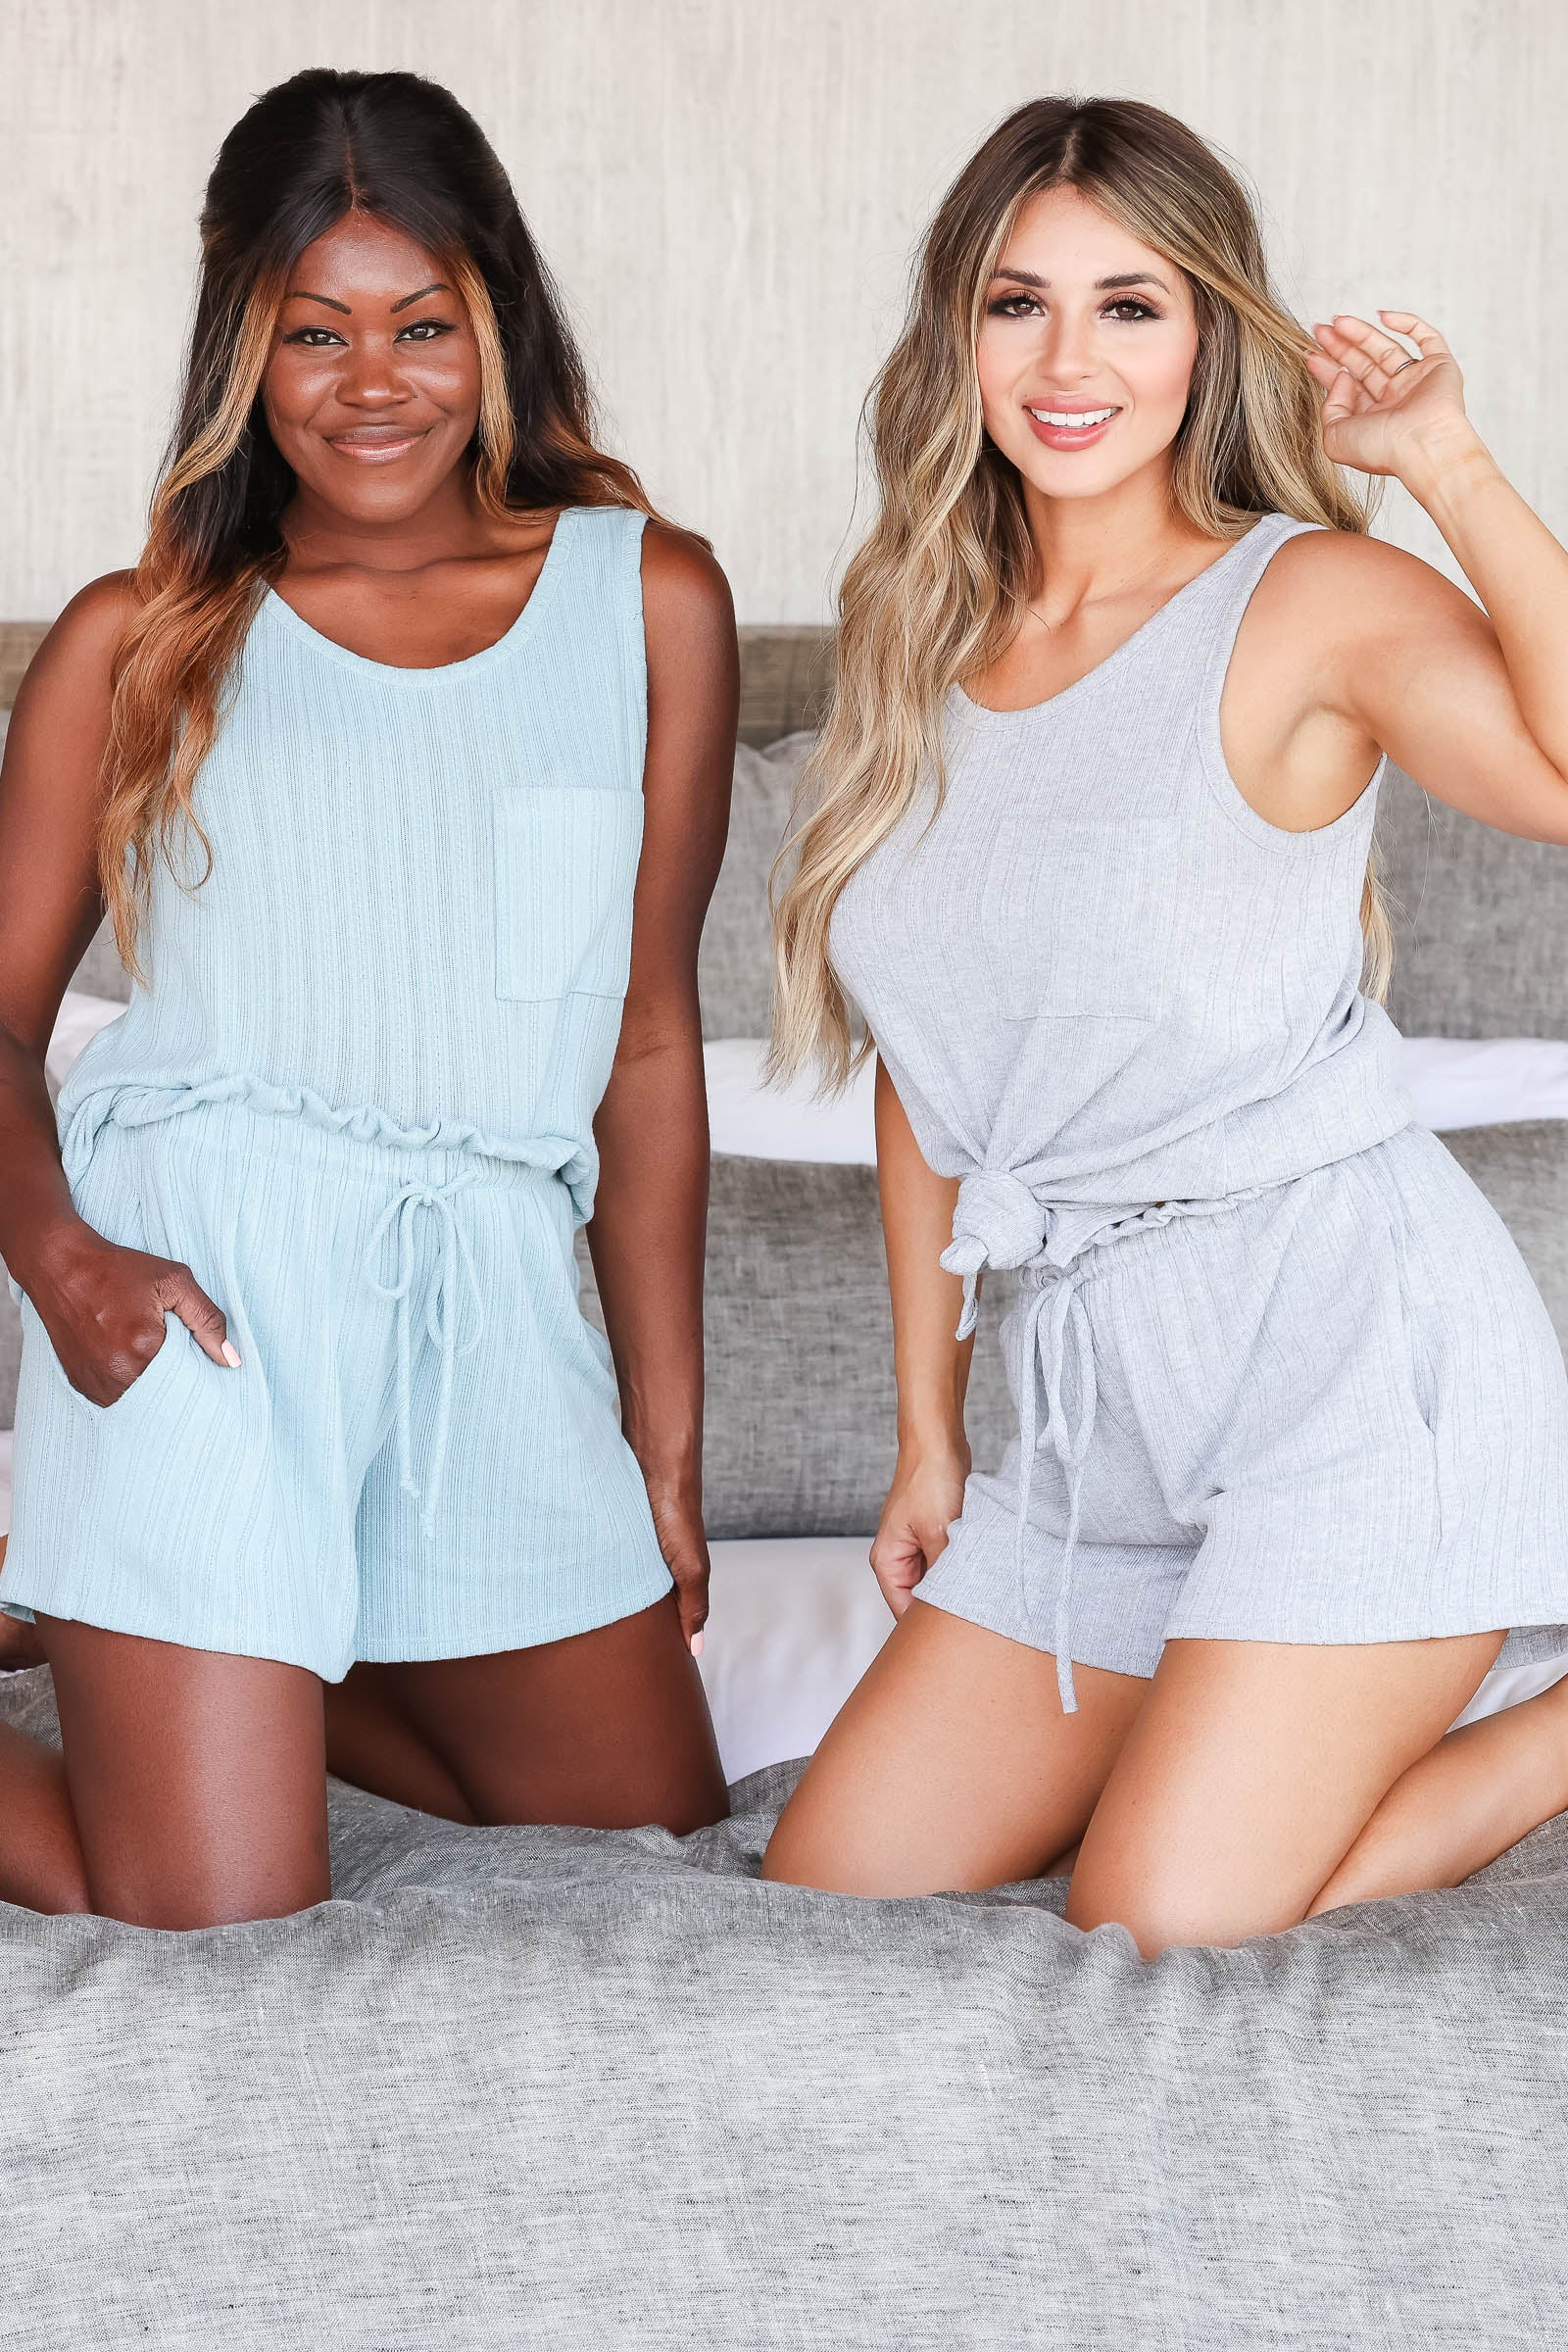 CBRAND Kickin' It Just For You Loungewear - Blue closet candy women's trendy matching loungewear tank top and shorts sitting